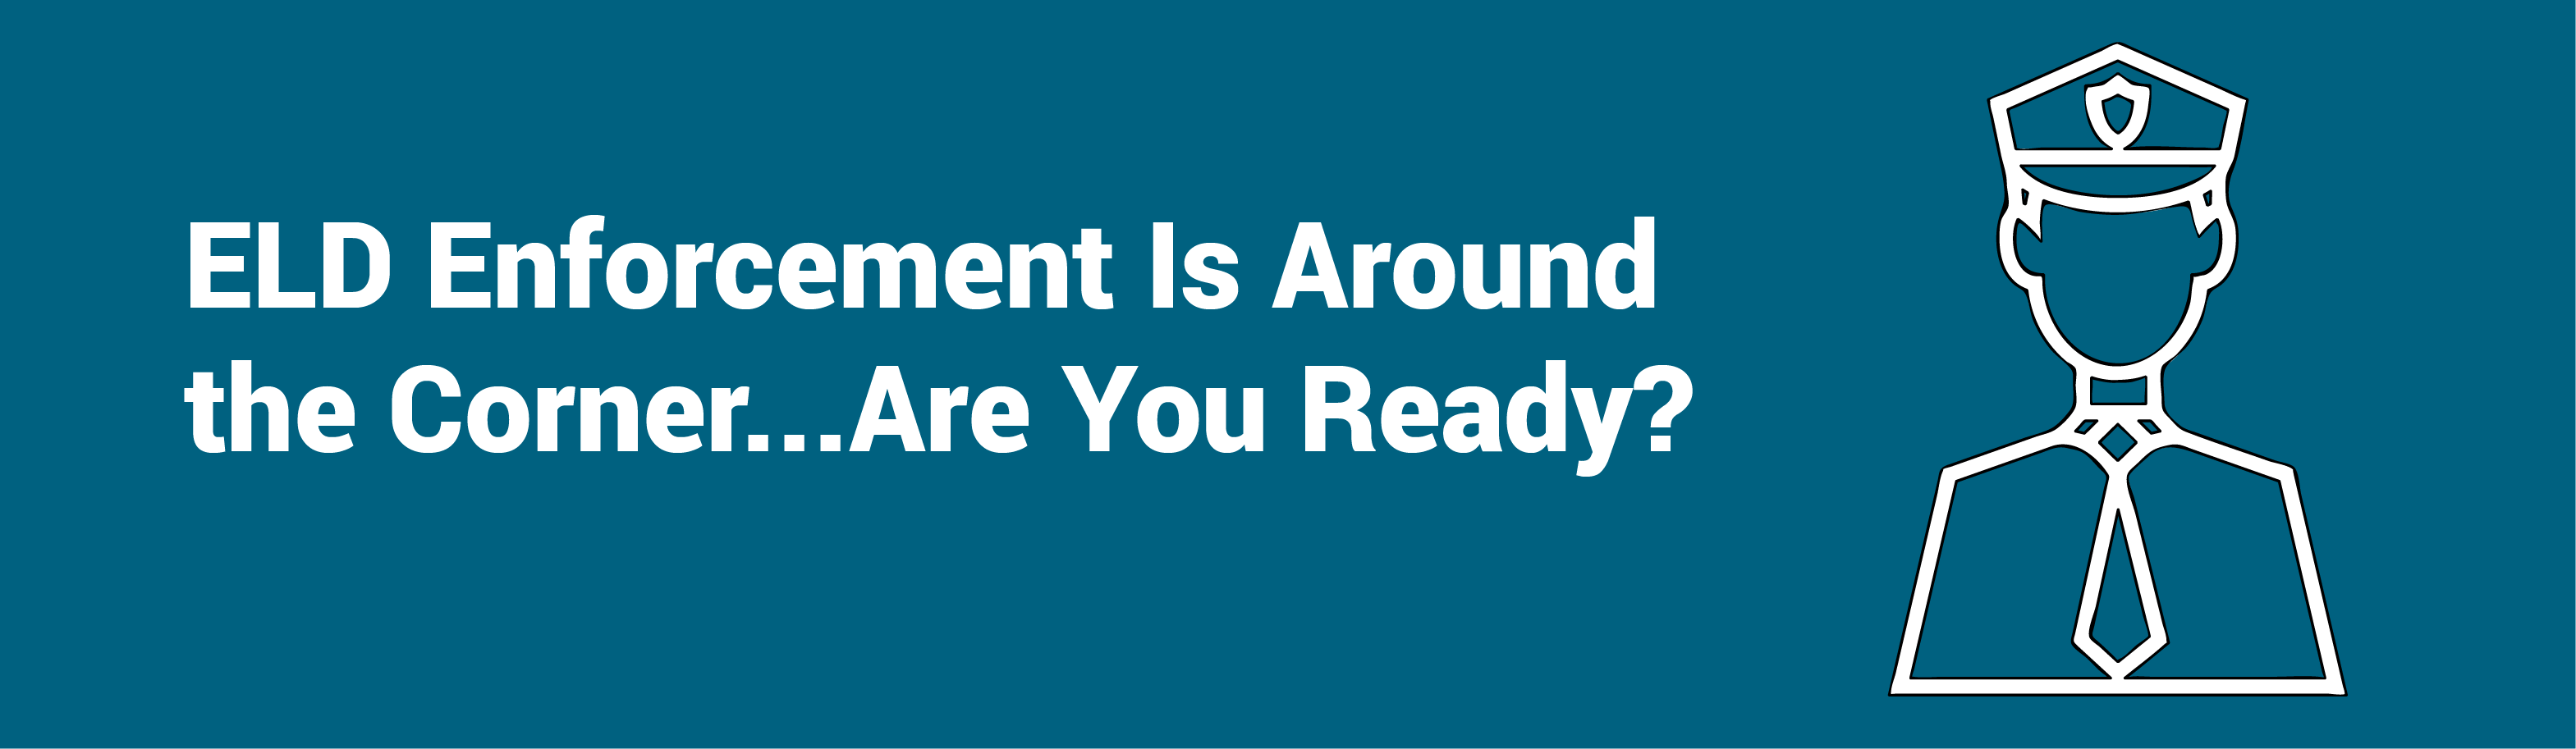 ELD Enforcement Is Around the Corner...Are You Ready?